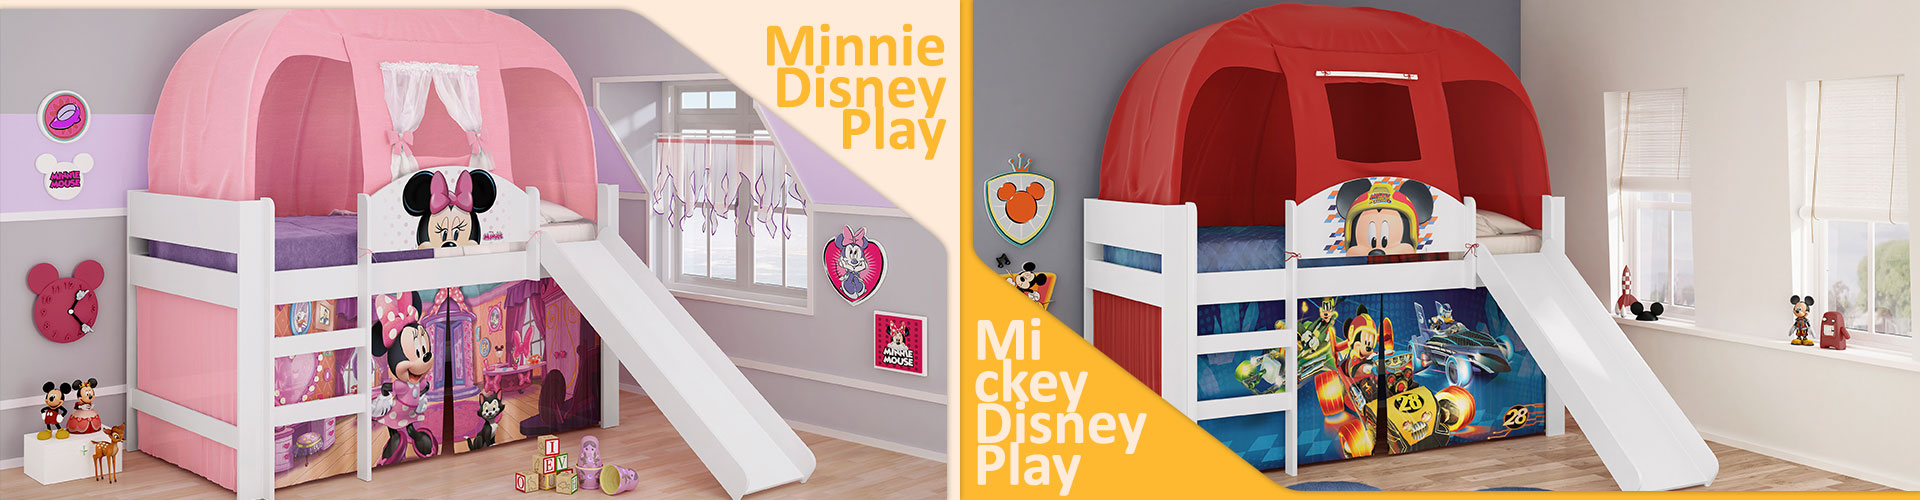 banner_personagens_minnie_mickey-play